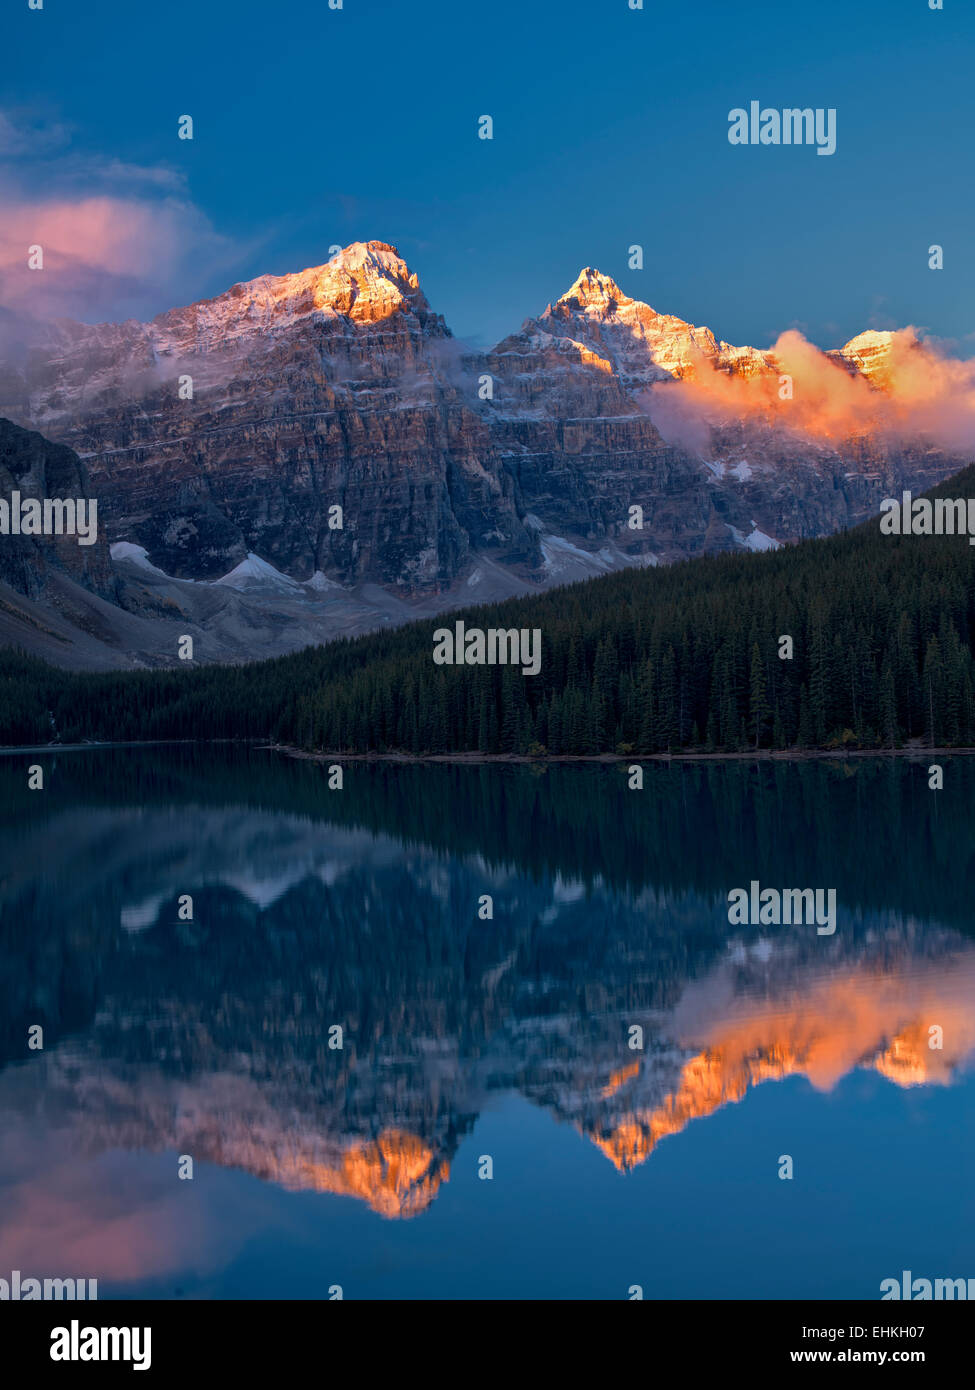 Le lac Moraine. Le parc national Banff. Alberta Canada. Photo Stock